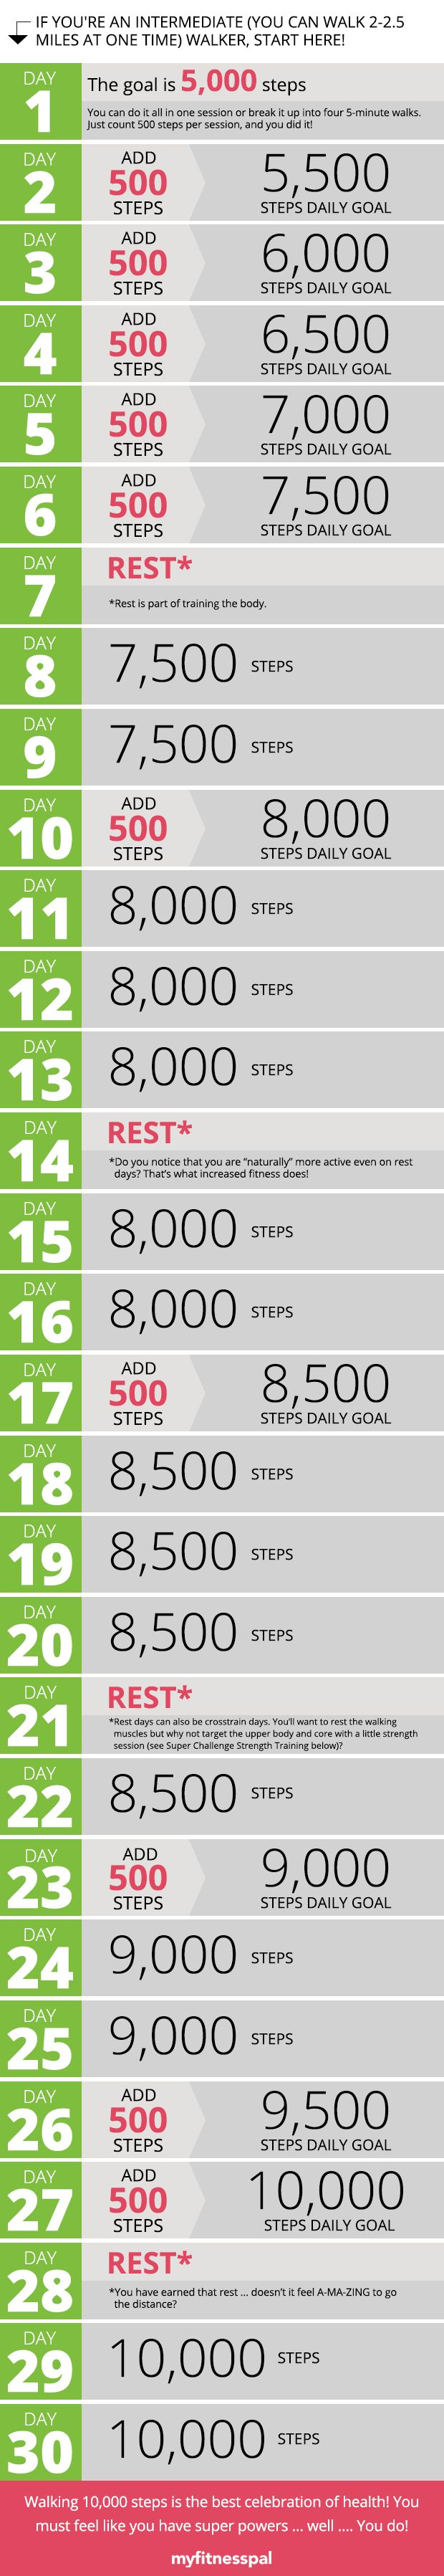 If you er not interested in intense workout for weight loss, then start walking for weight loss. this Myfitnesspal walking challenge will help you to lose 1 pounds per week without easily. Walking for weight loss tips. Reduce weight fast. Lose weight by w #Walkingforweightloss